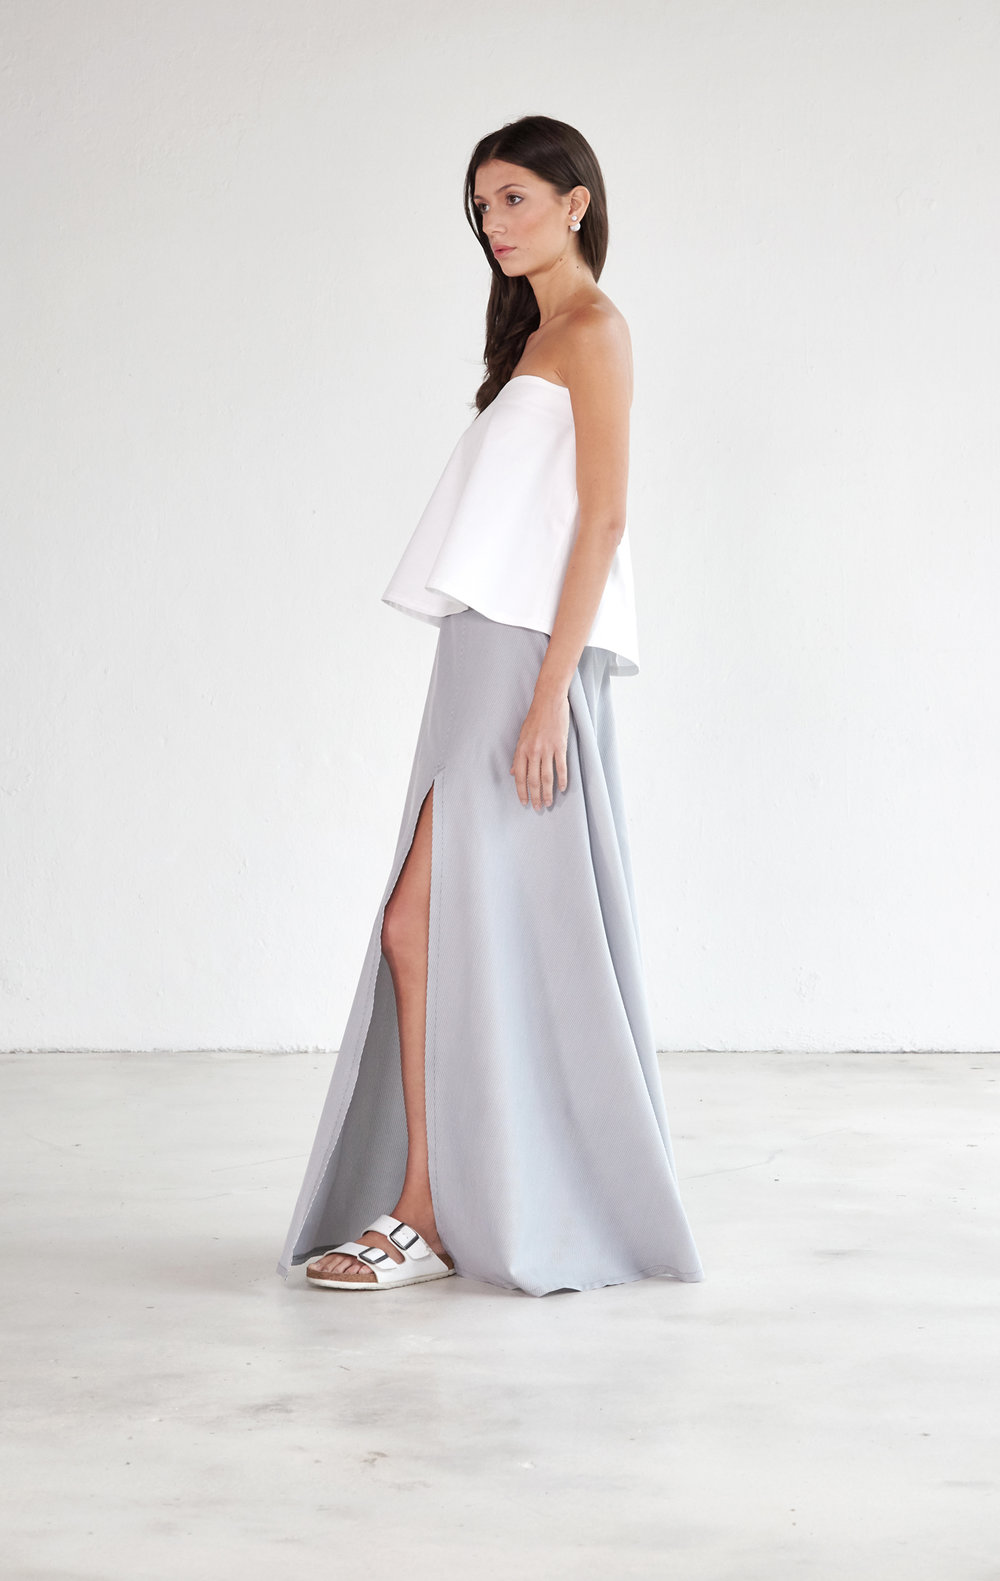 ERIKA_SS16_COLLECTION04220sm.jpg